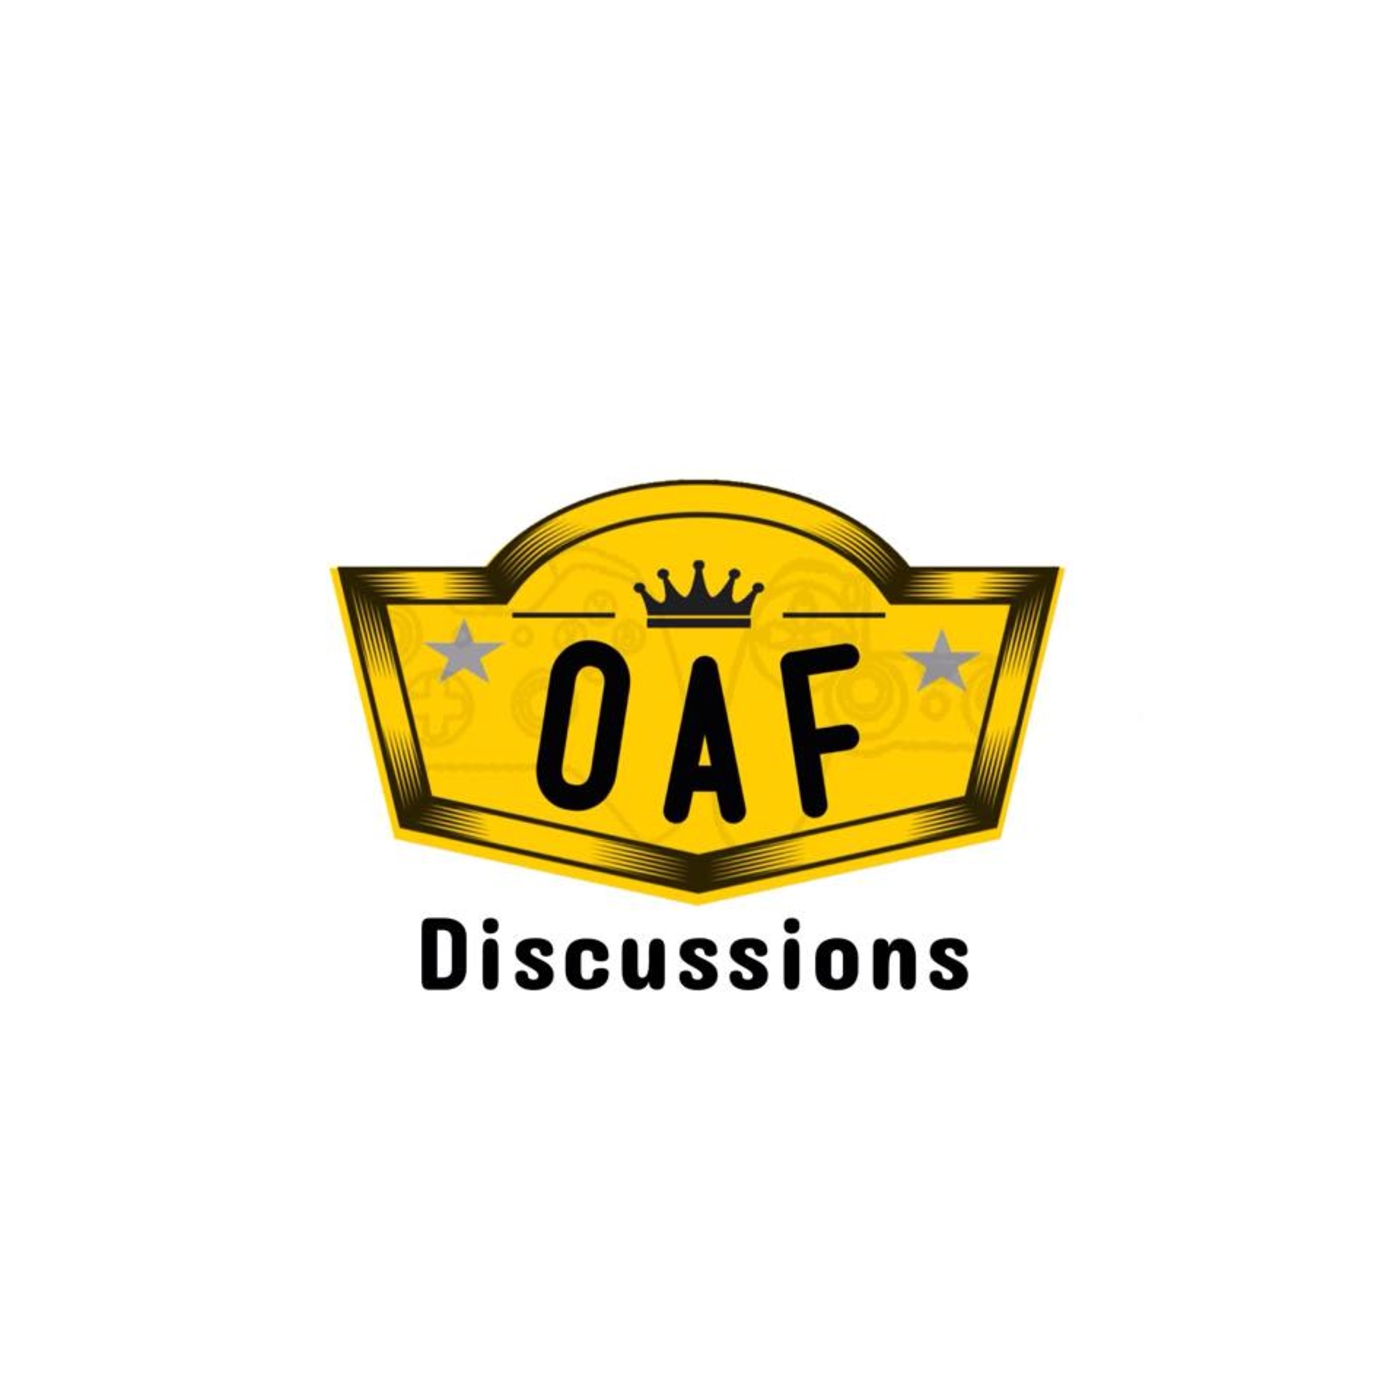 OAF Discussions